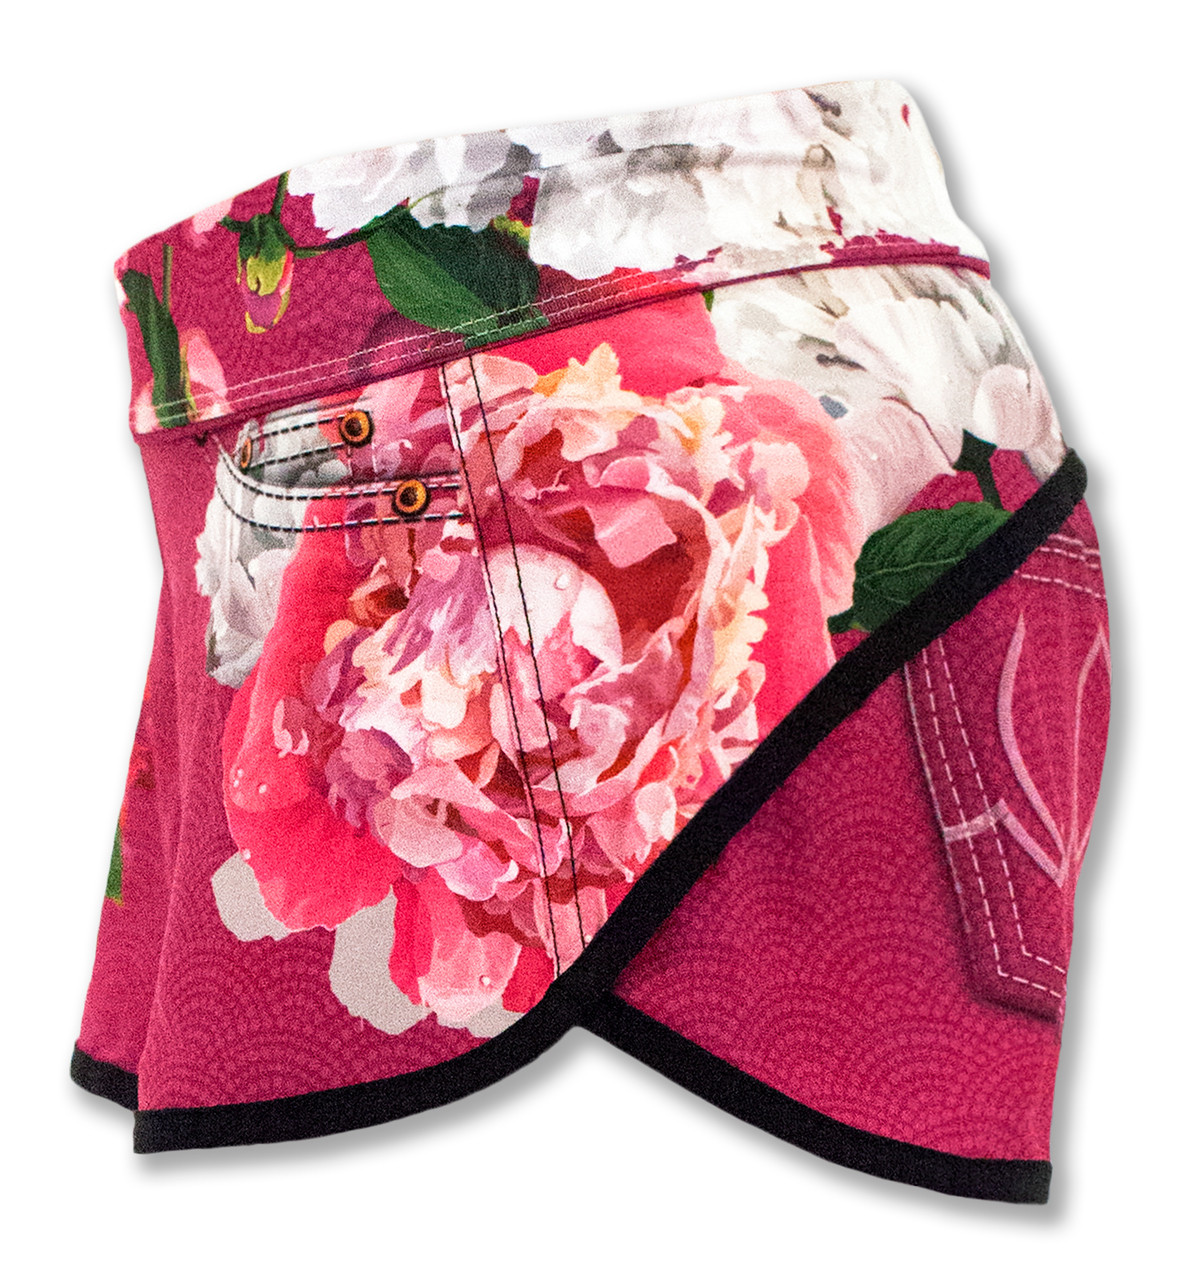 INKnBURN Pink Flora Shorts Left Side Waistband Folded Down